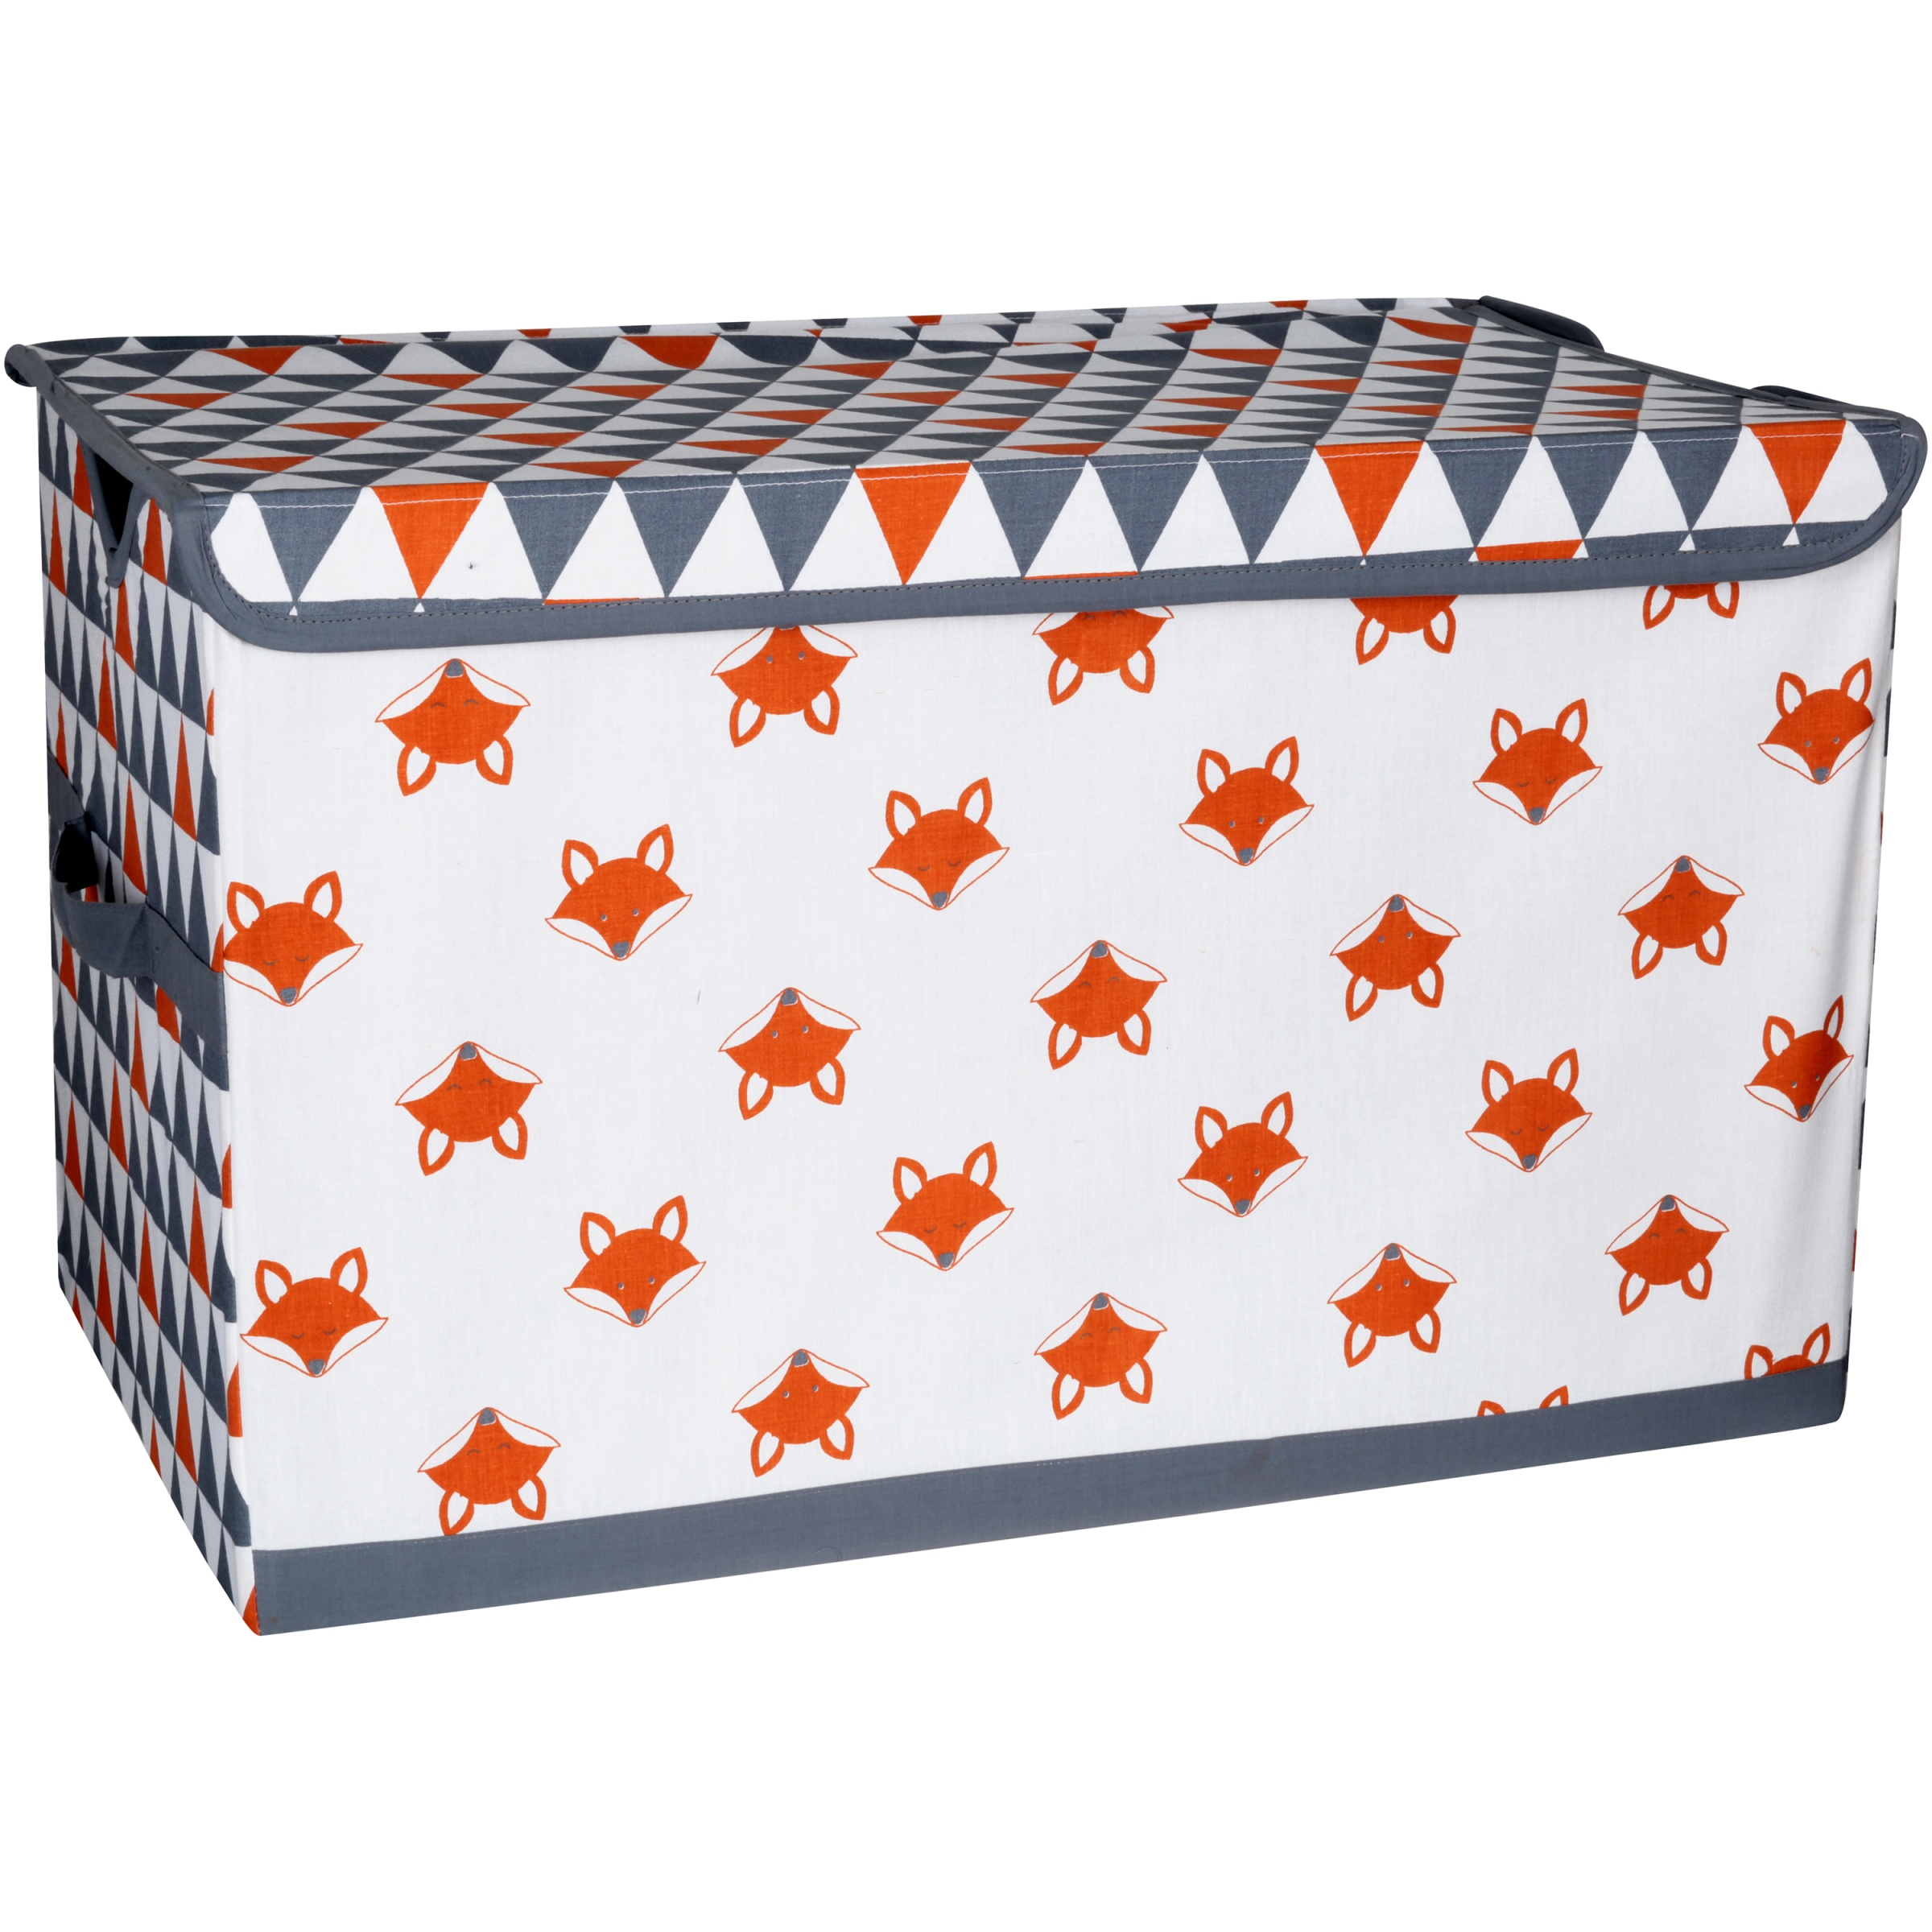 Bacati Large Storage Toy Chest Pack